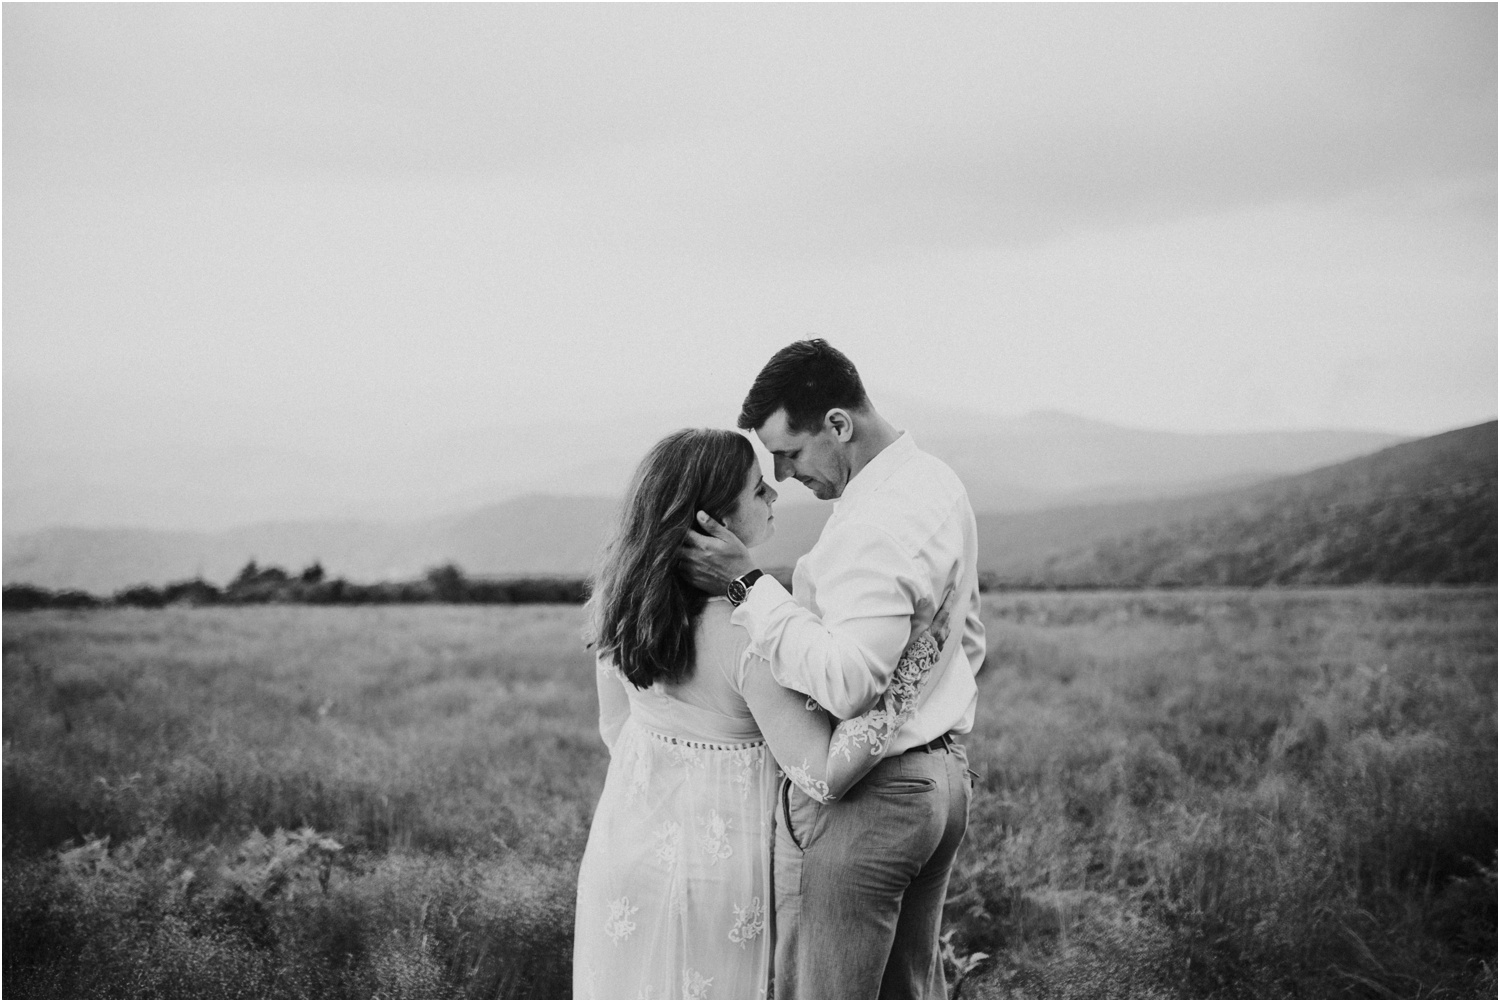 lovestoriesco-asheville-north-carolina-elopement-wedding-23.jpg